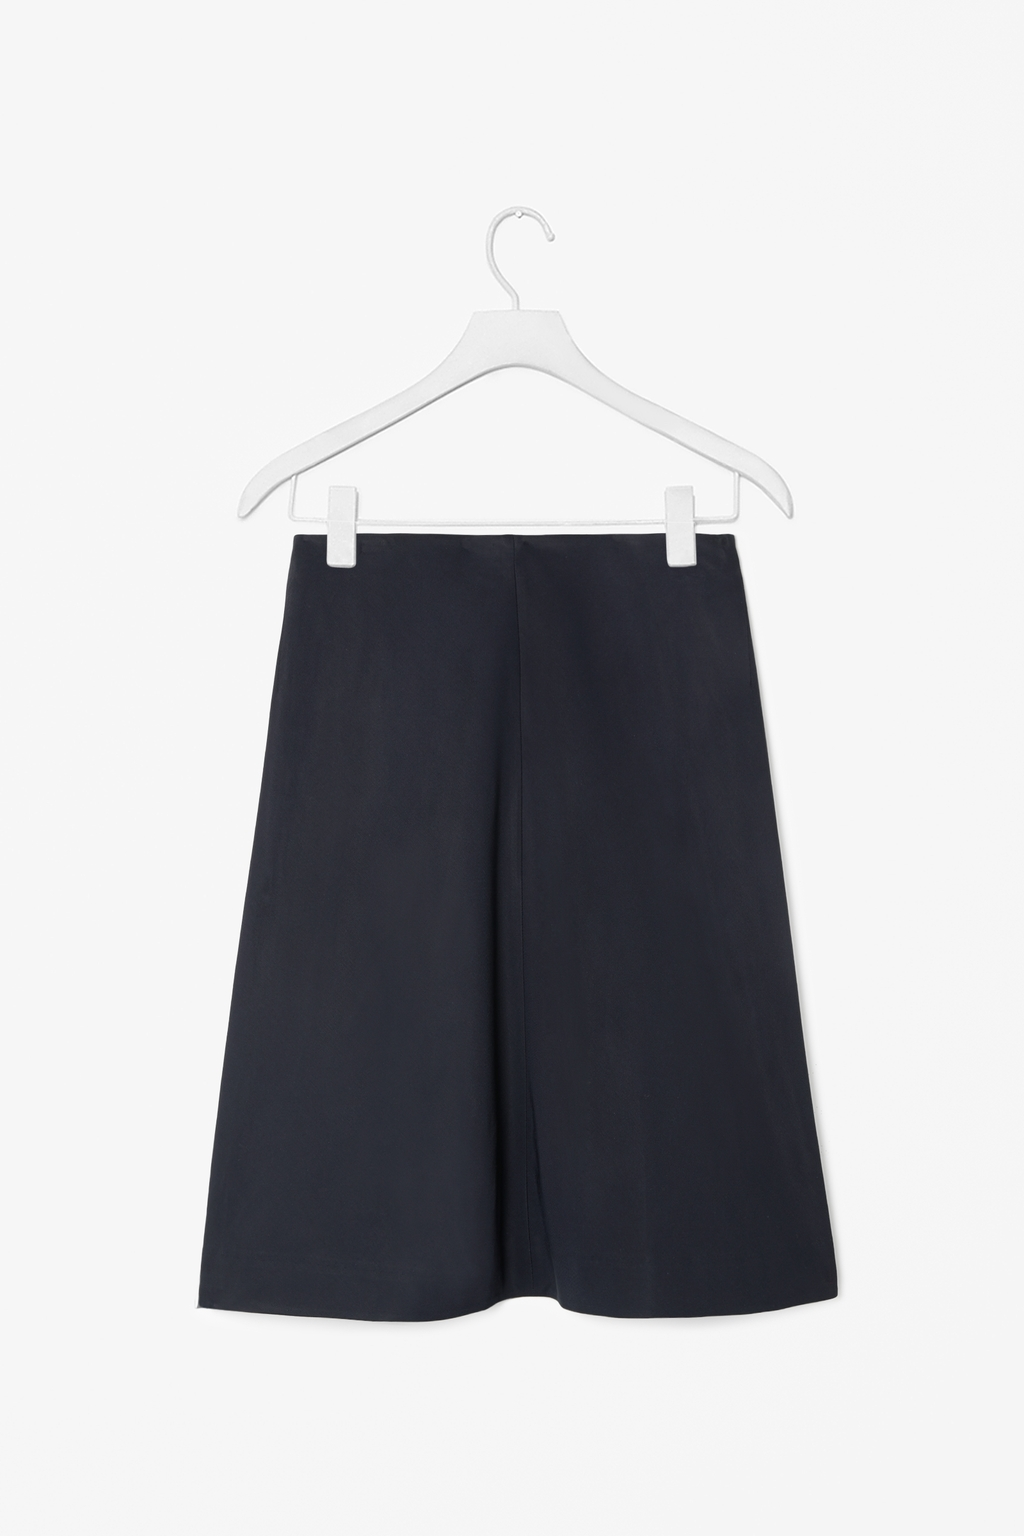 Skirt With Back Pleats - pattern: plain; style: full/prom skirt; fit: loose/voluminous; waist: high rise; predominant colour: navy; occasions: casual, work, creative work; length: on the knee; pattern type: fabric; texture group: woven light midweight; fibres: viscose/rayon - mix; season: s/s 2014